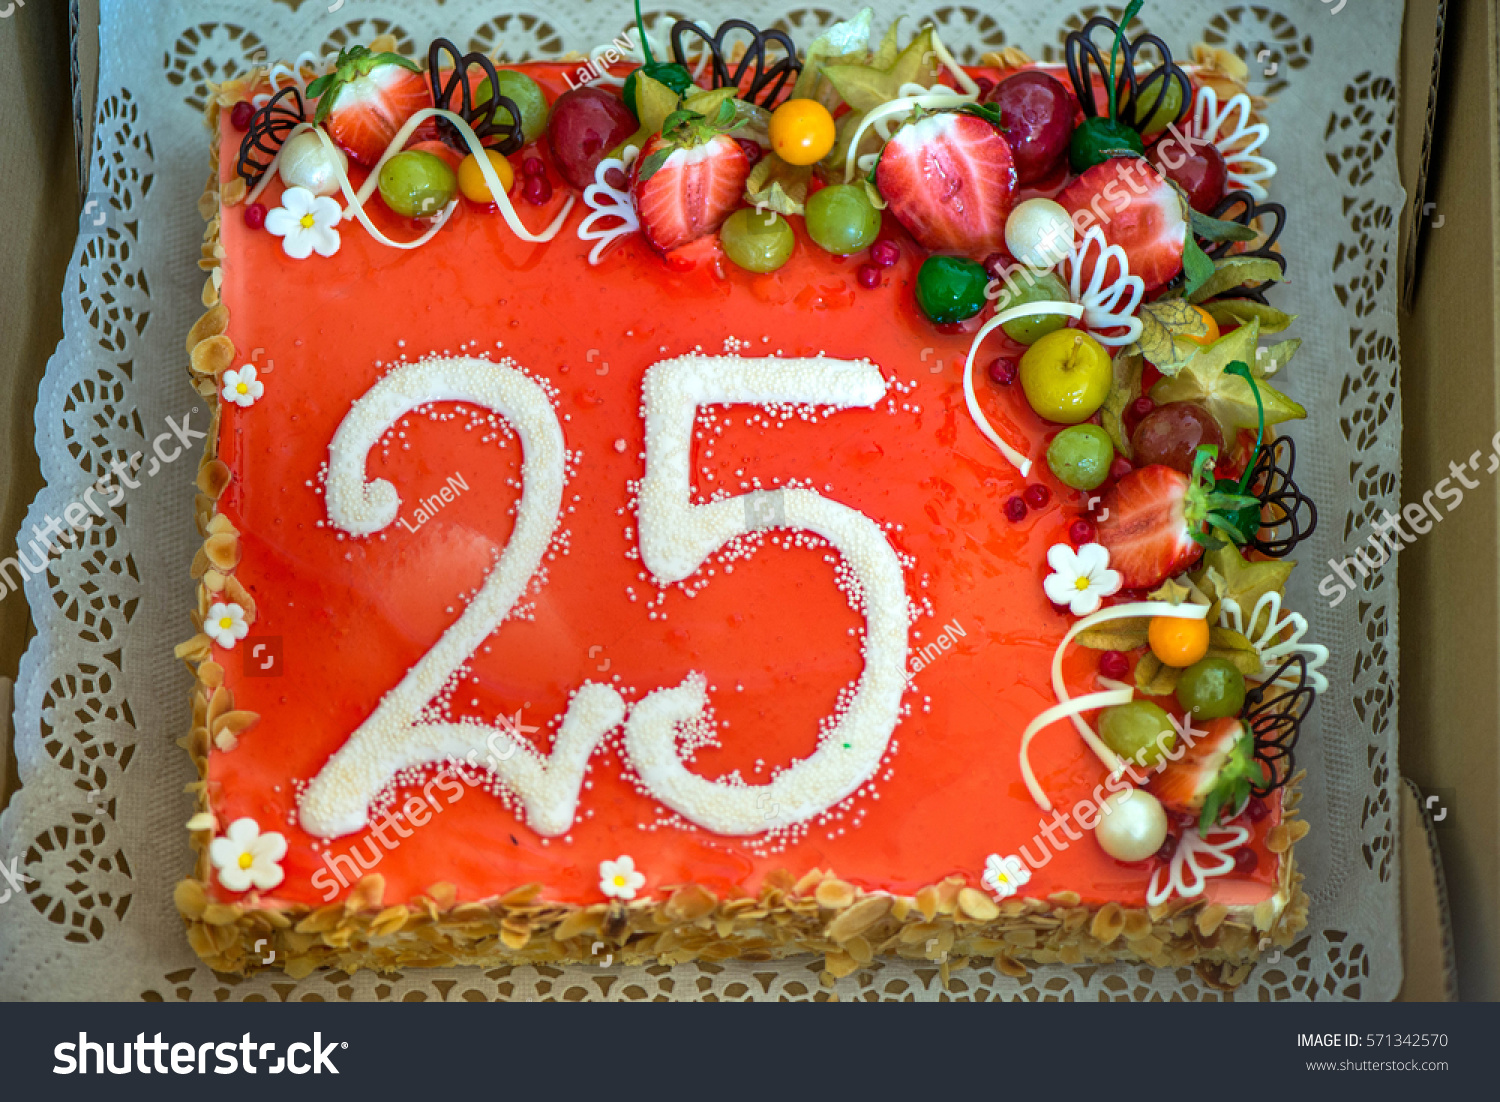 Delicious Baked Anniversary Birthday Cake With Fruits Strawberries Blueberries Cherries Green